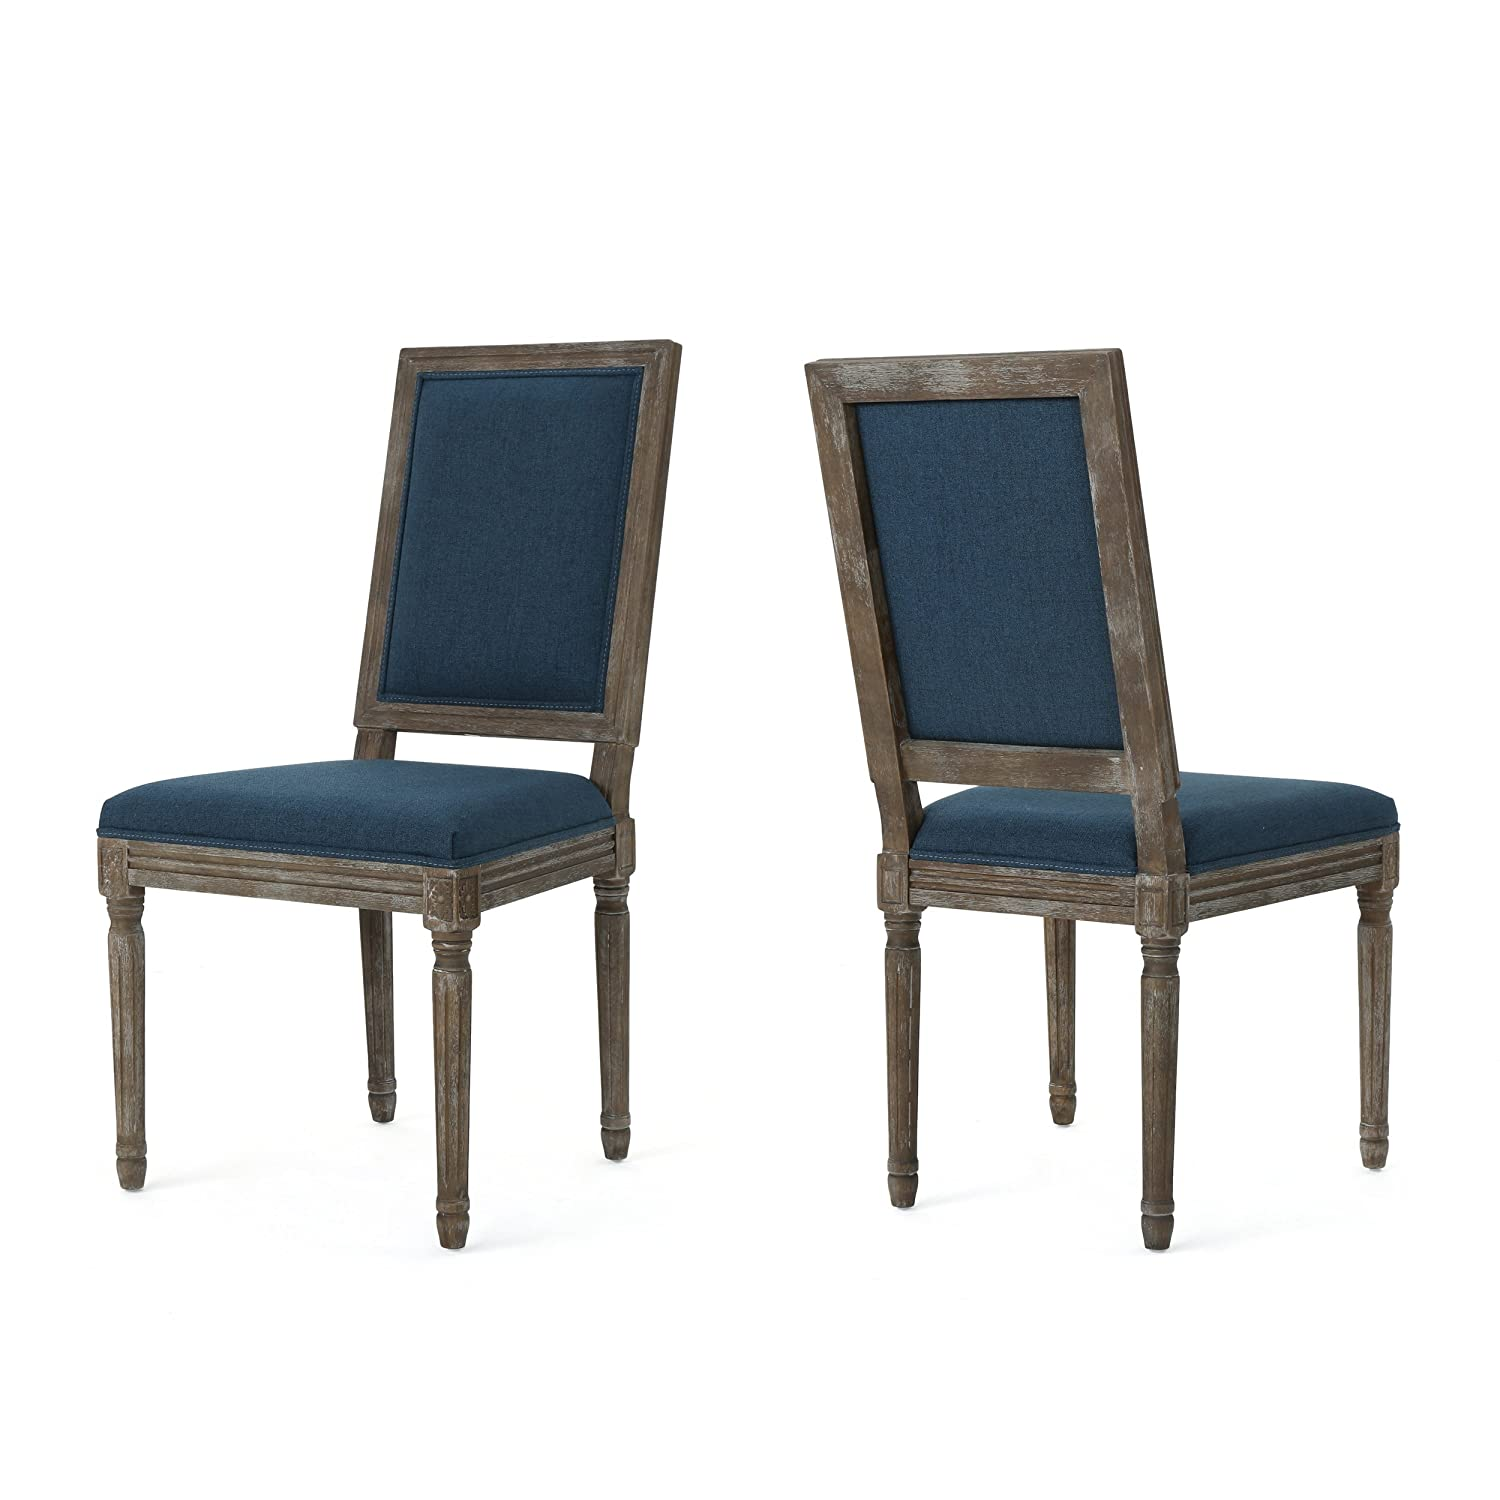 Christopher Knight Home Margaret Traditional Fabric Dining Chairs (Set of 2), Navy Blue/Dark Brown